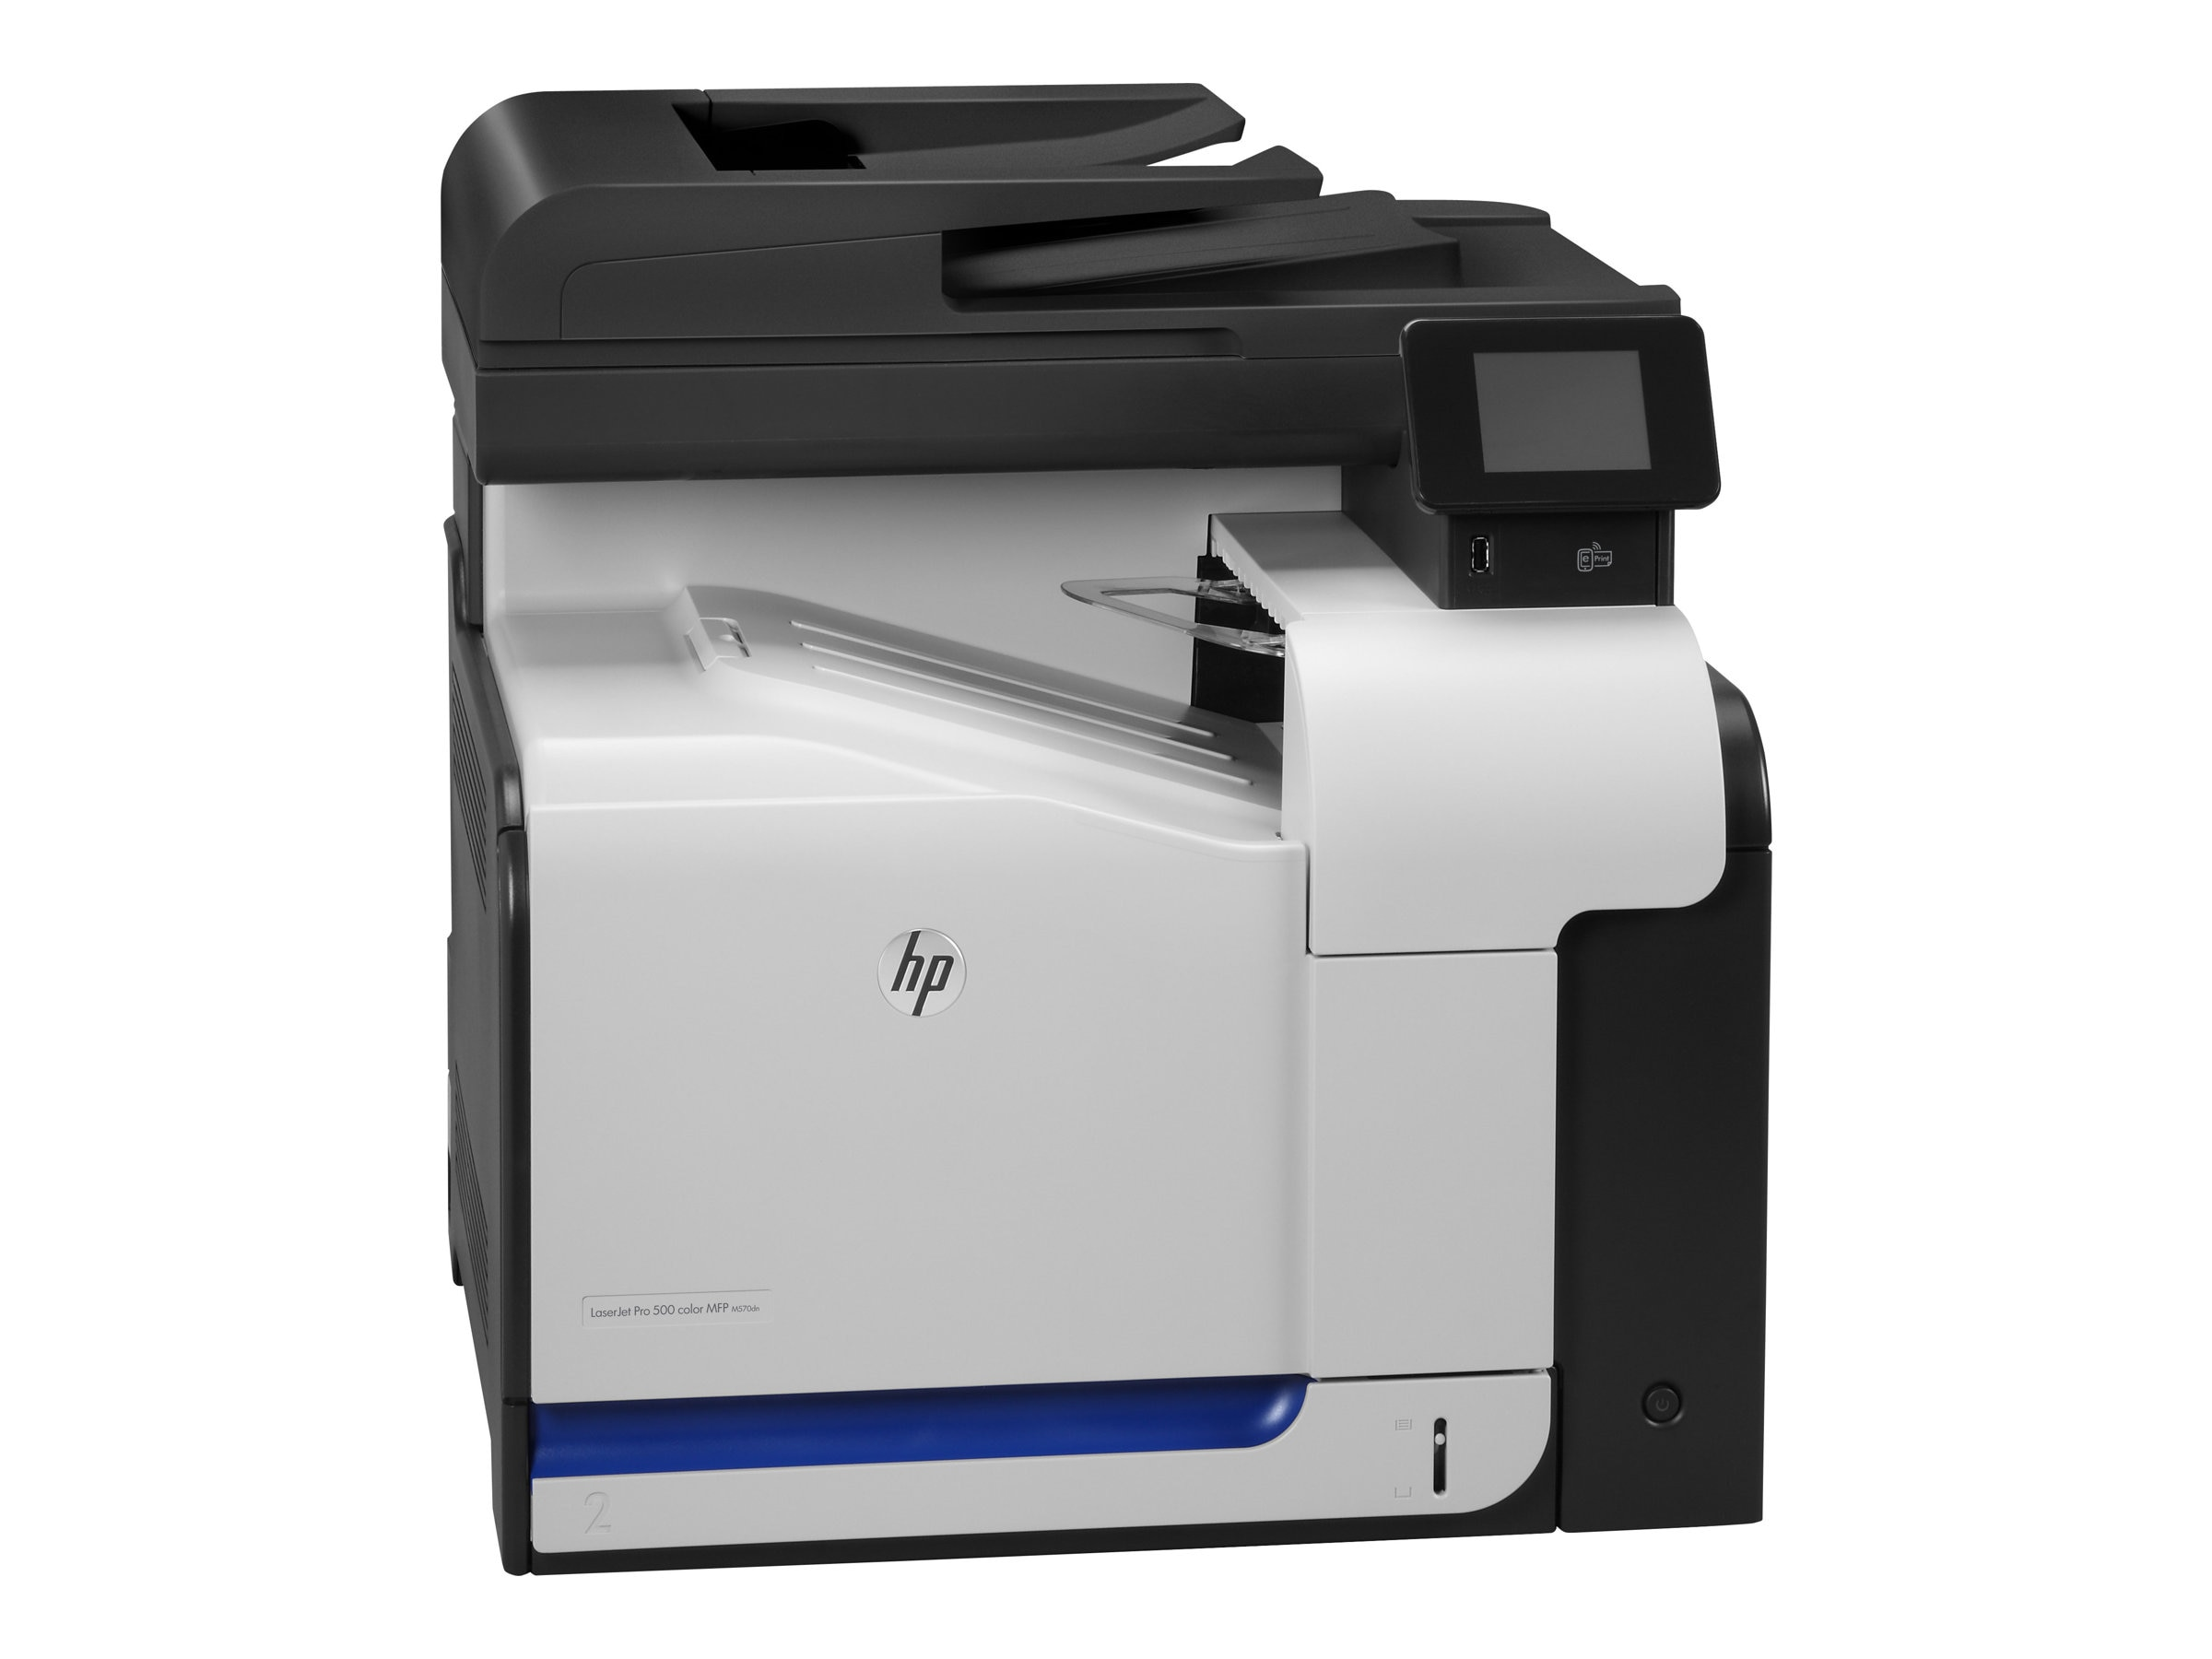 HP LaserJet Pro 500 color MFP M570dn ($999.00-$200.00 Instant Rebate = $799.00. Expires 3 31), CZ271A#BGJ, 14713474, MultiFunction - Laser (color)